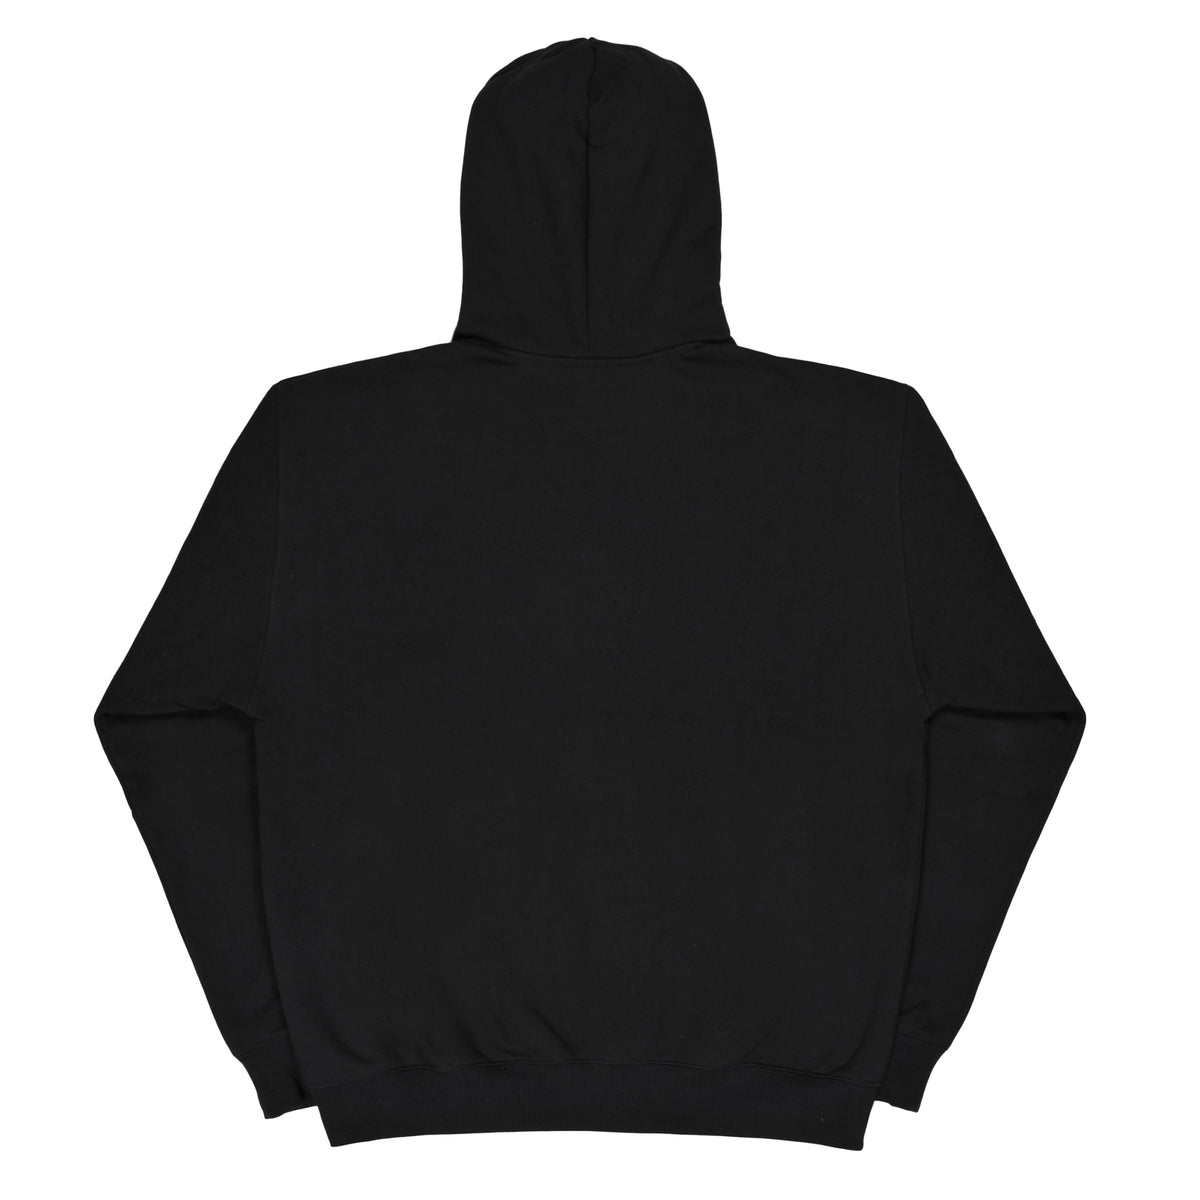 PUFF LOGO black hoodie - RAVE skateboards